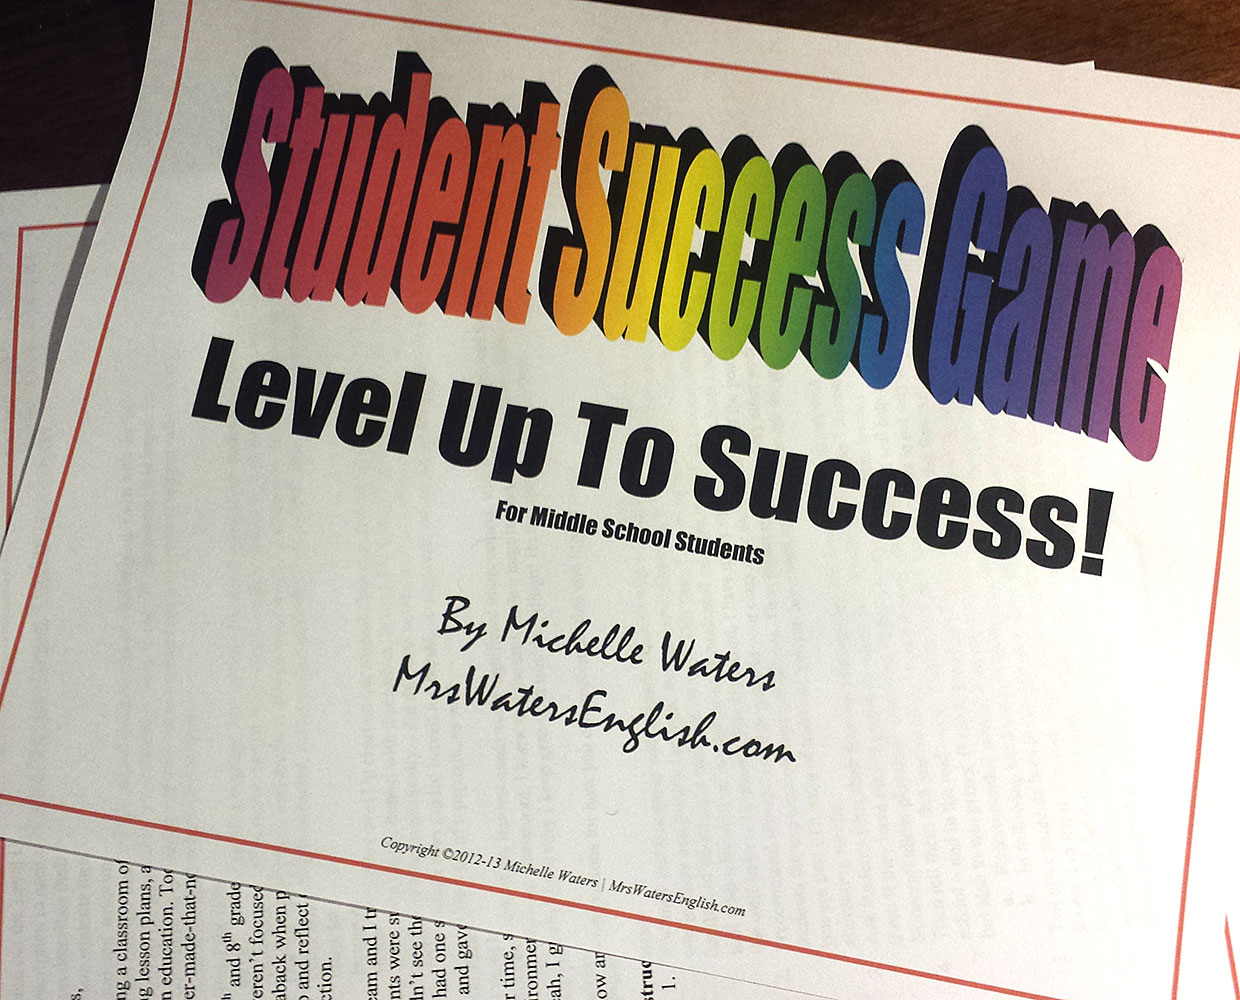 Student Success Game